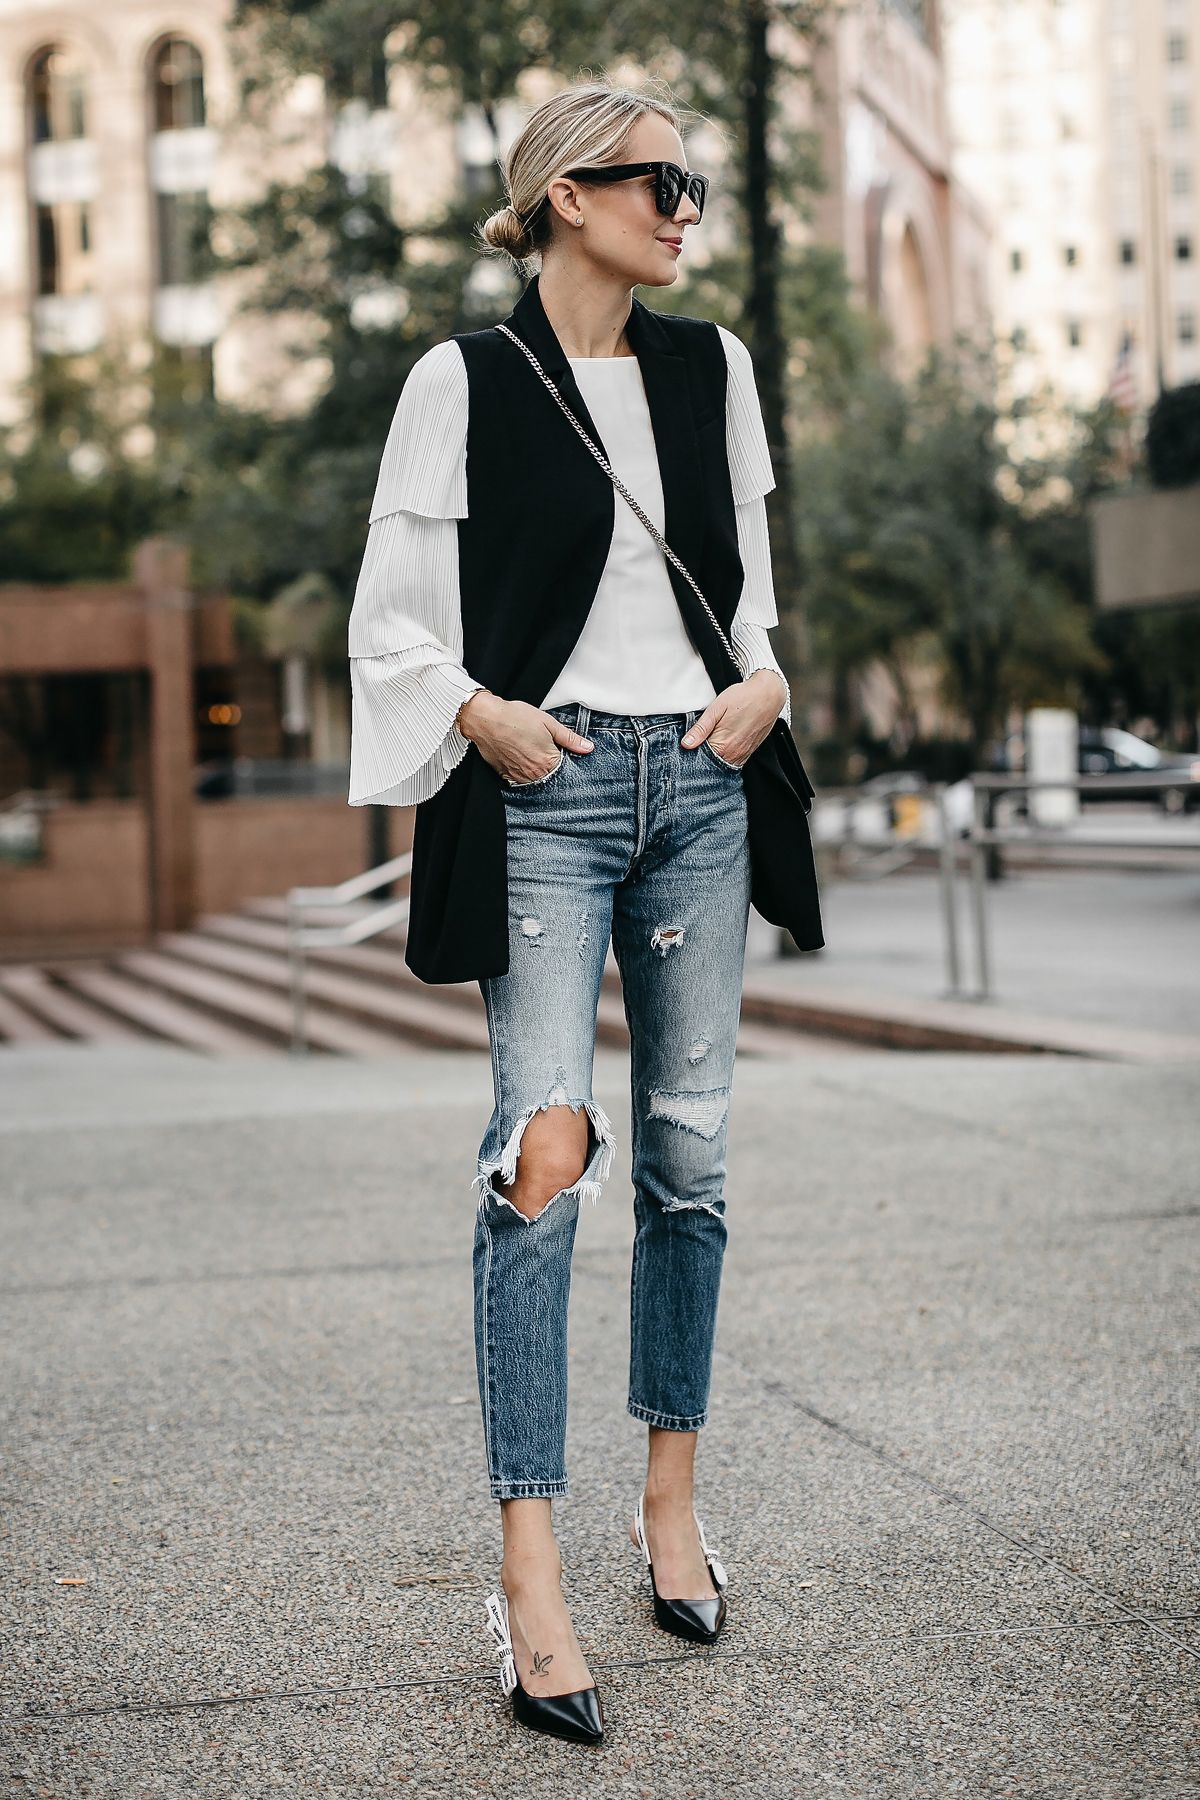 1e29590419acce Blonde Woman Wearing Long Black Vest White Pleat Sleeve Top Denim Ripped  Jeans Dior Slingbacks Fashion Jackson Dallas Blogger Fashion Blogger Street  Style